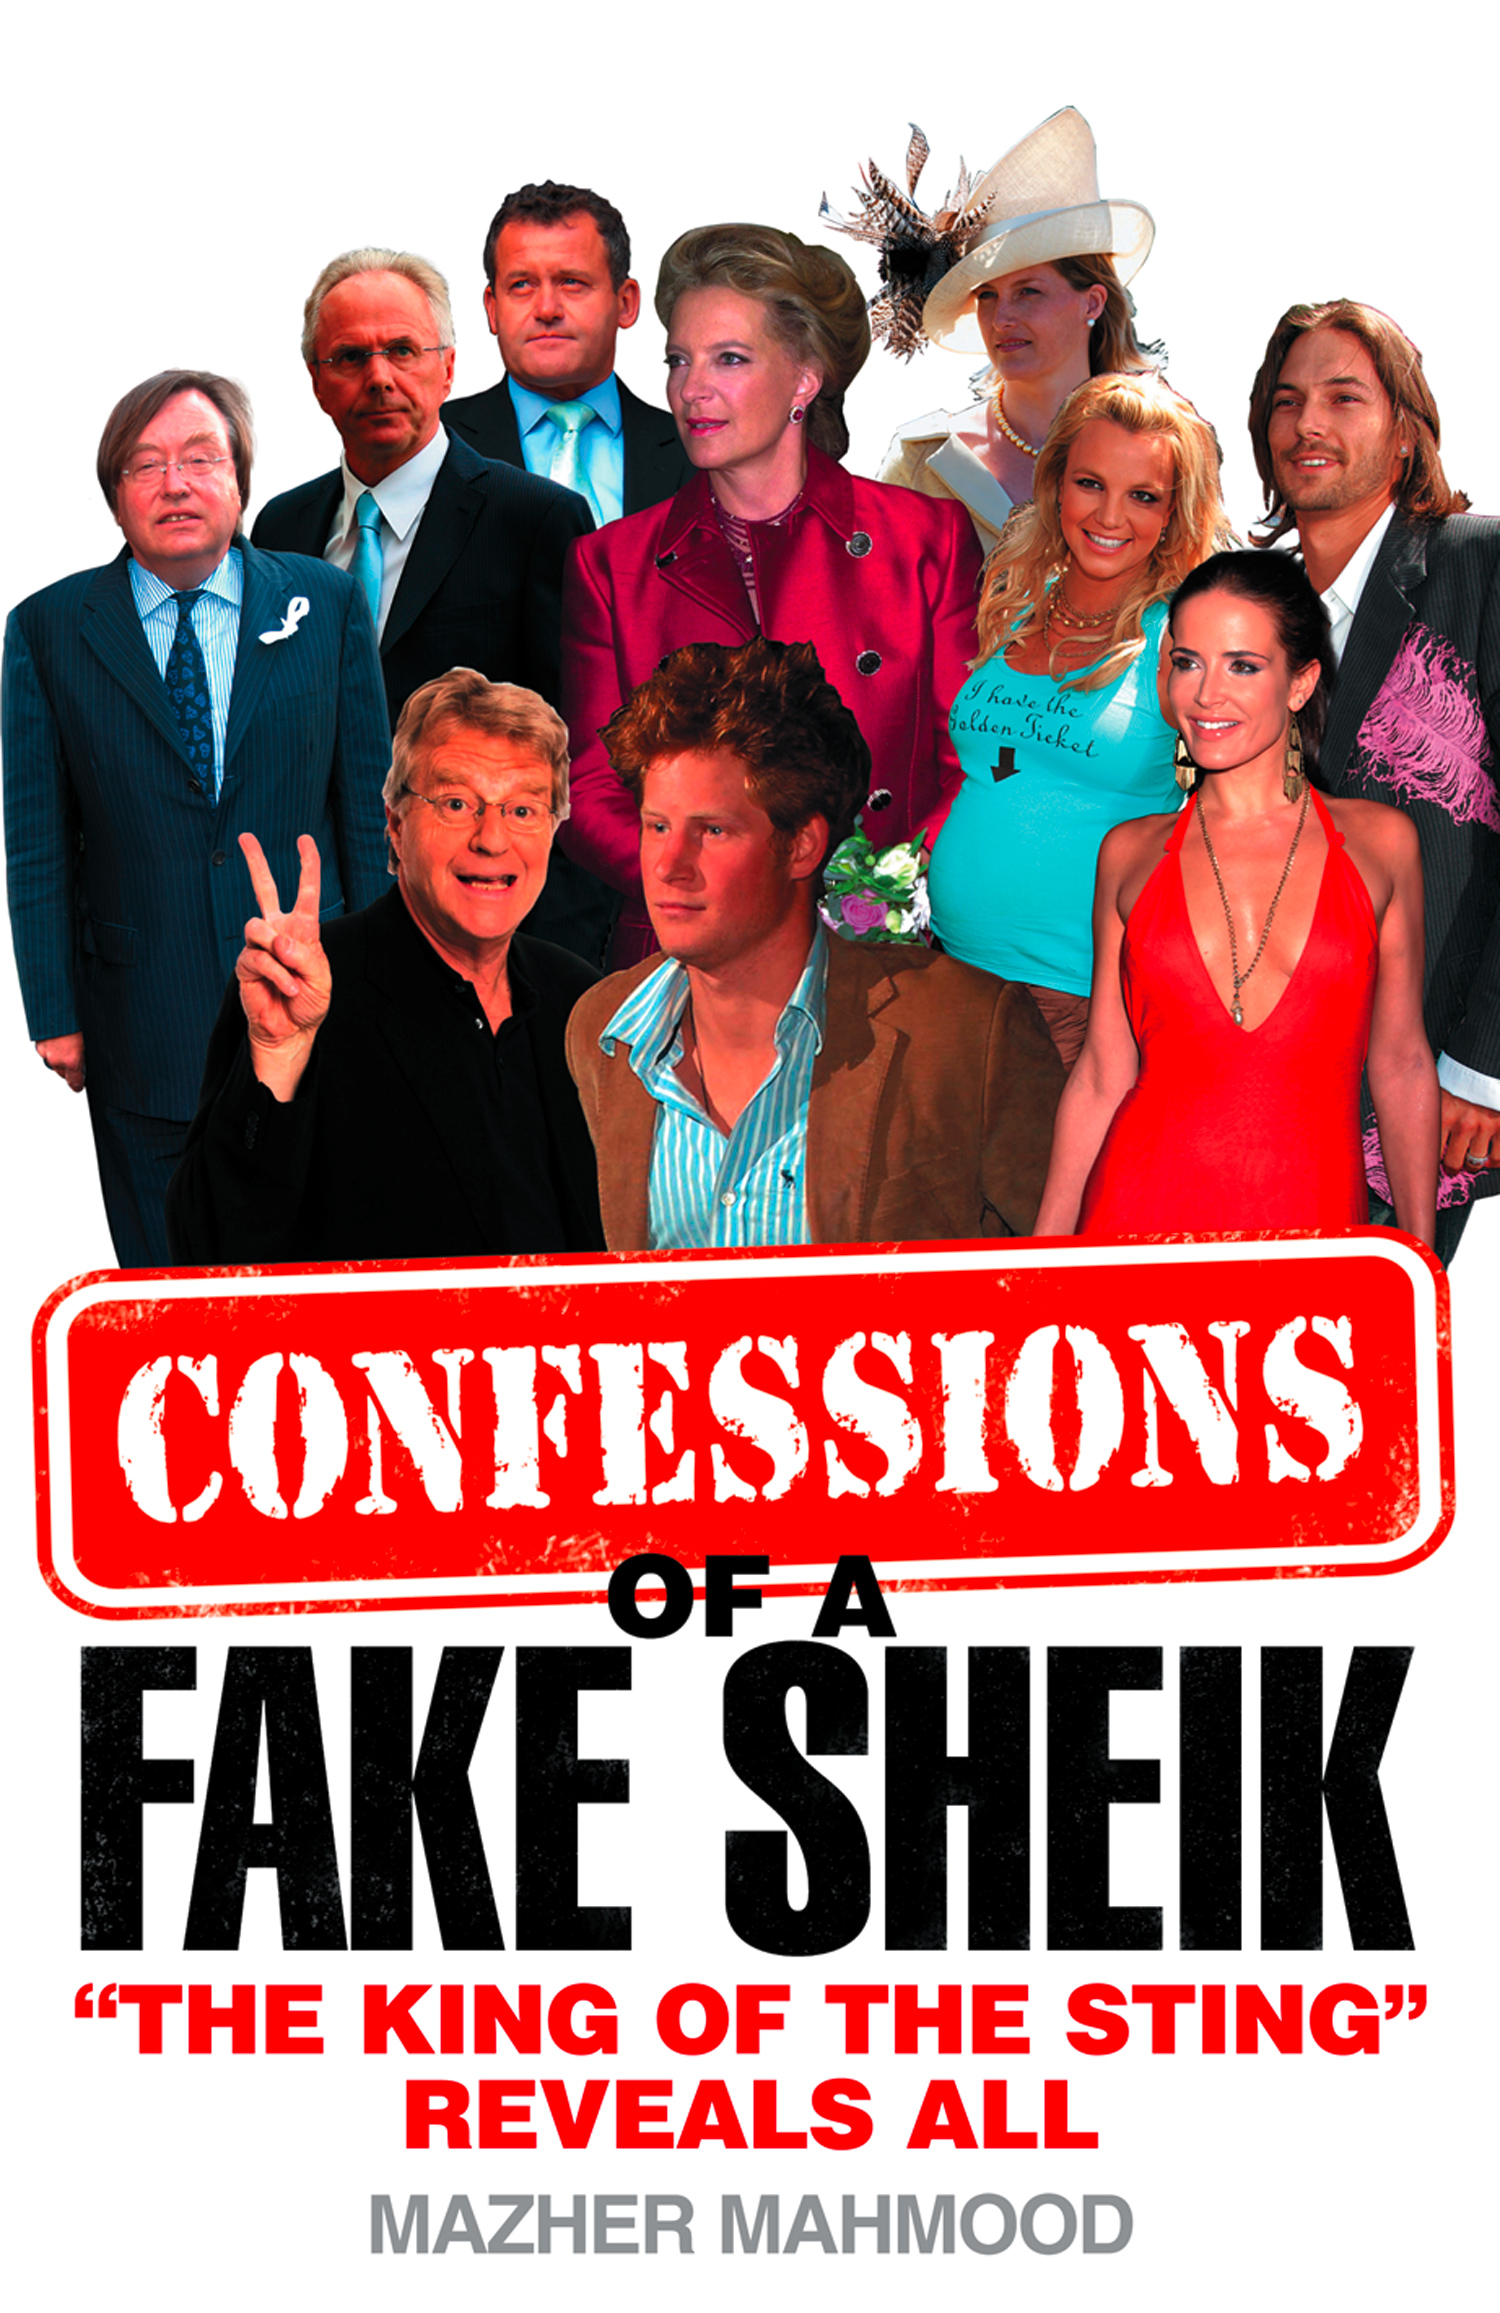 Confessions of a Fake Sheik: ?The King of the Sting? Reveals All